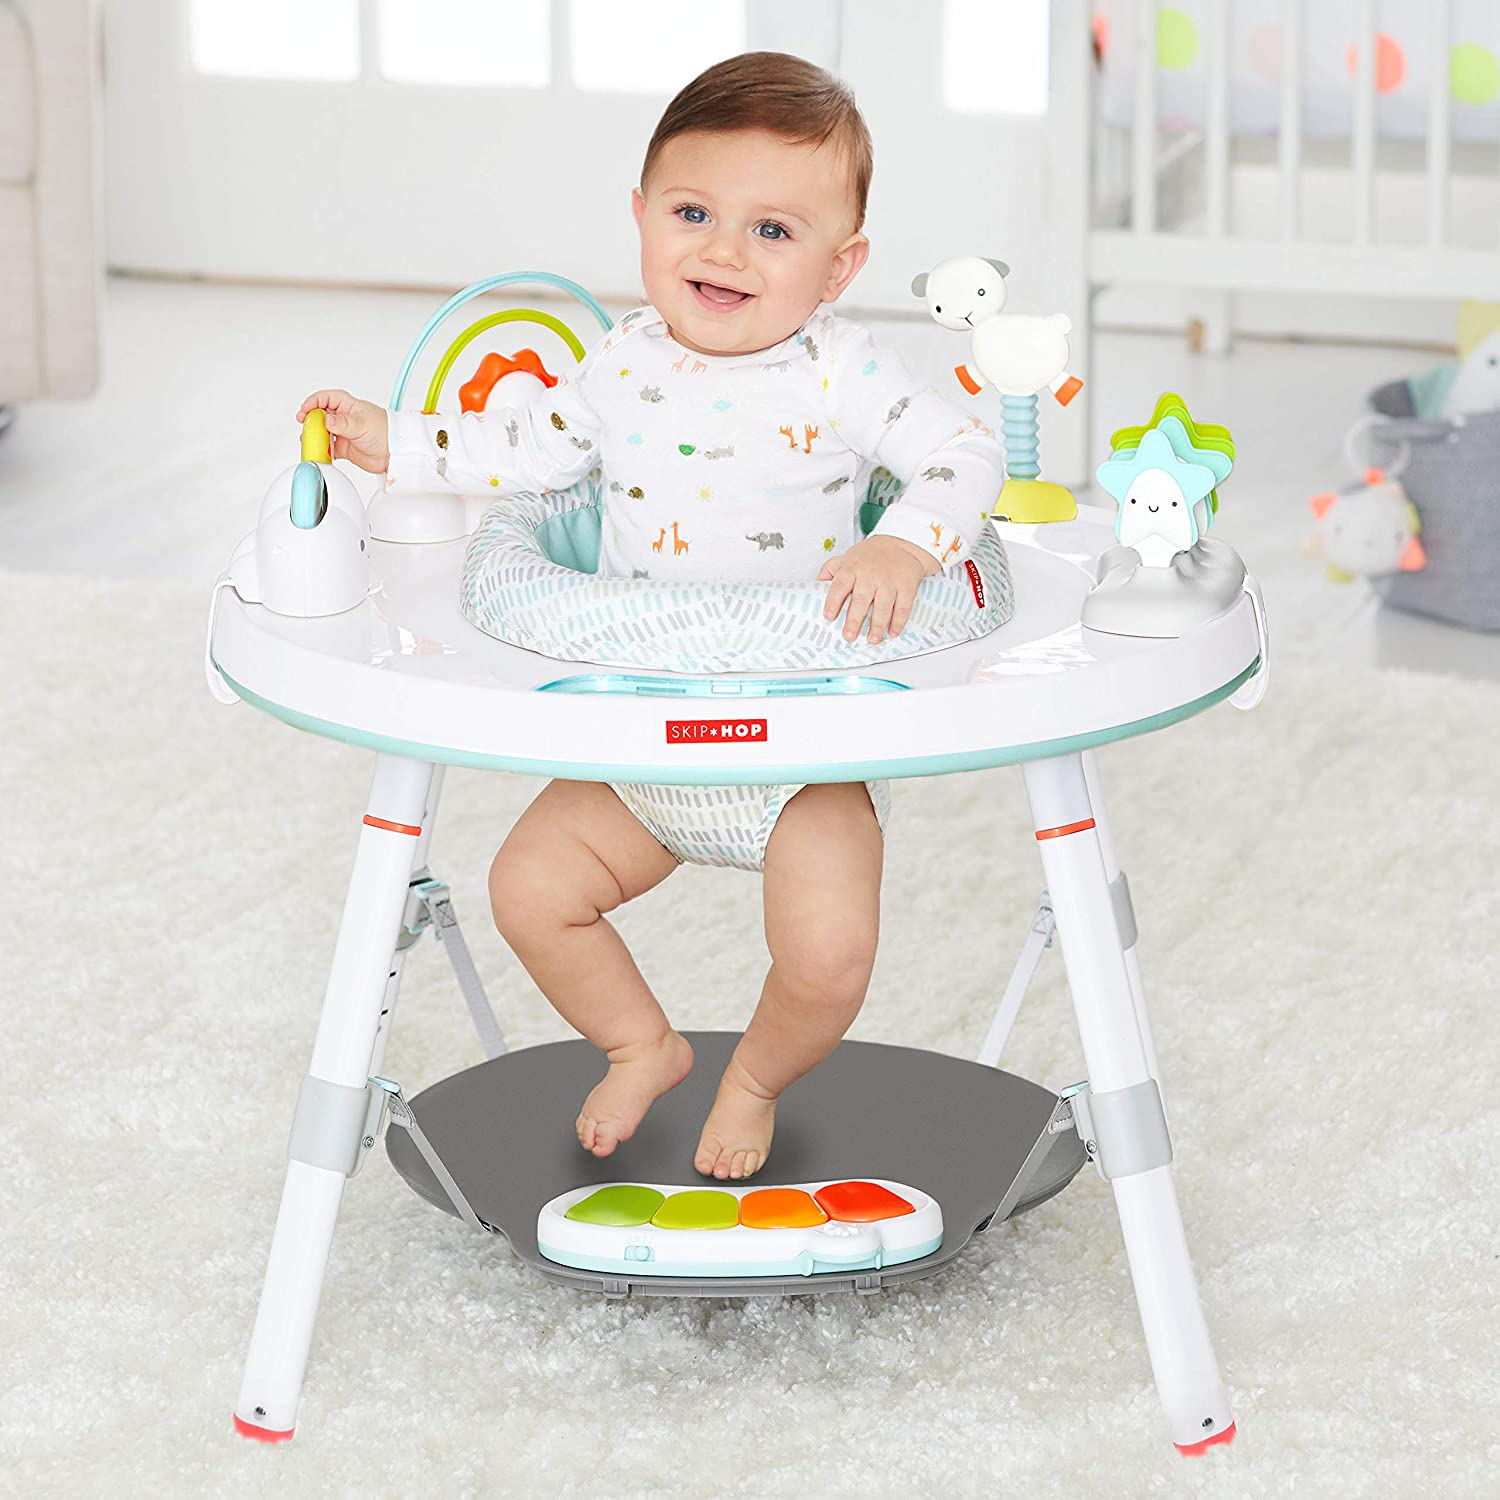 b873a9dc65e2 Amazon.com  Skip Hop Baby s View 3-Stage Activity Center